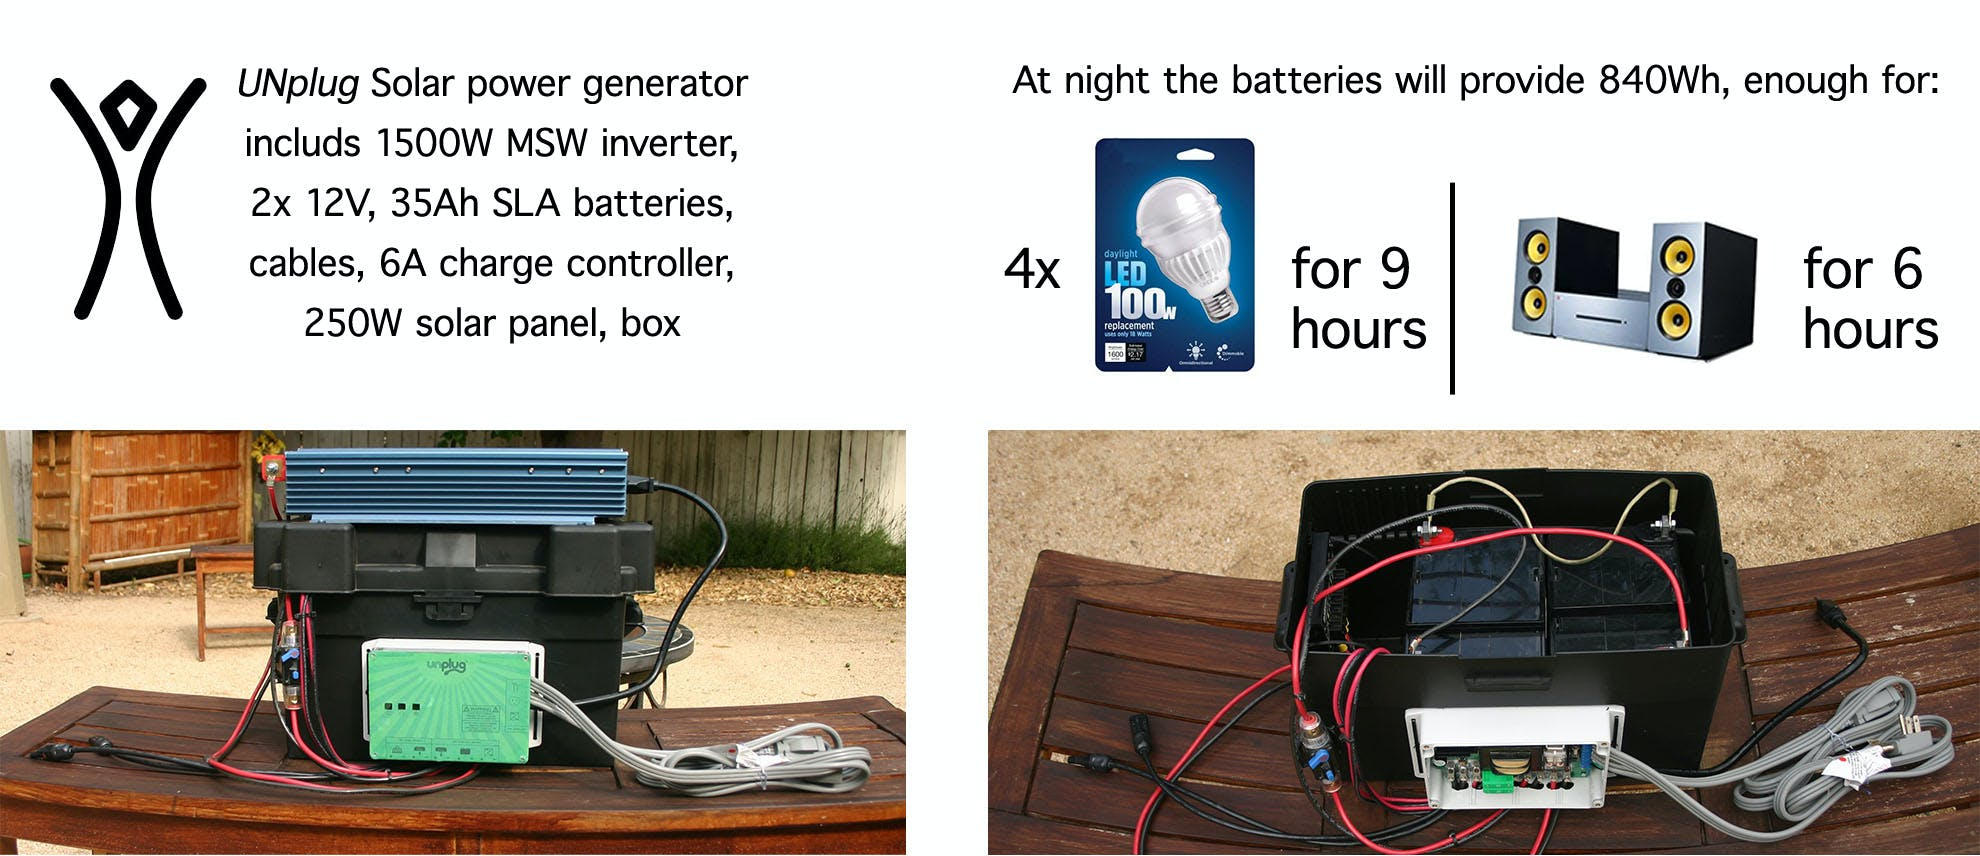 The 'Burning Man' Kickstarter special with all items assembled in a battery box